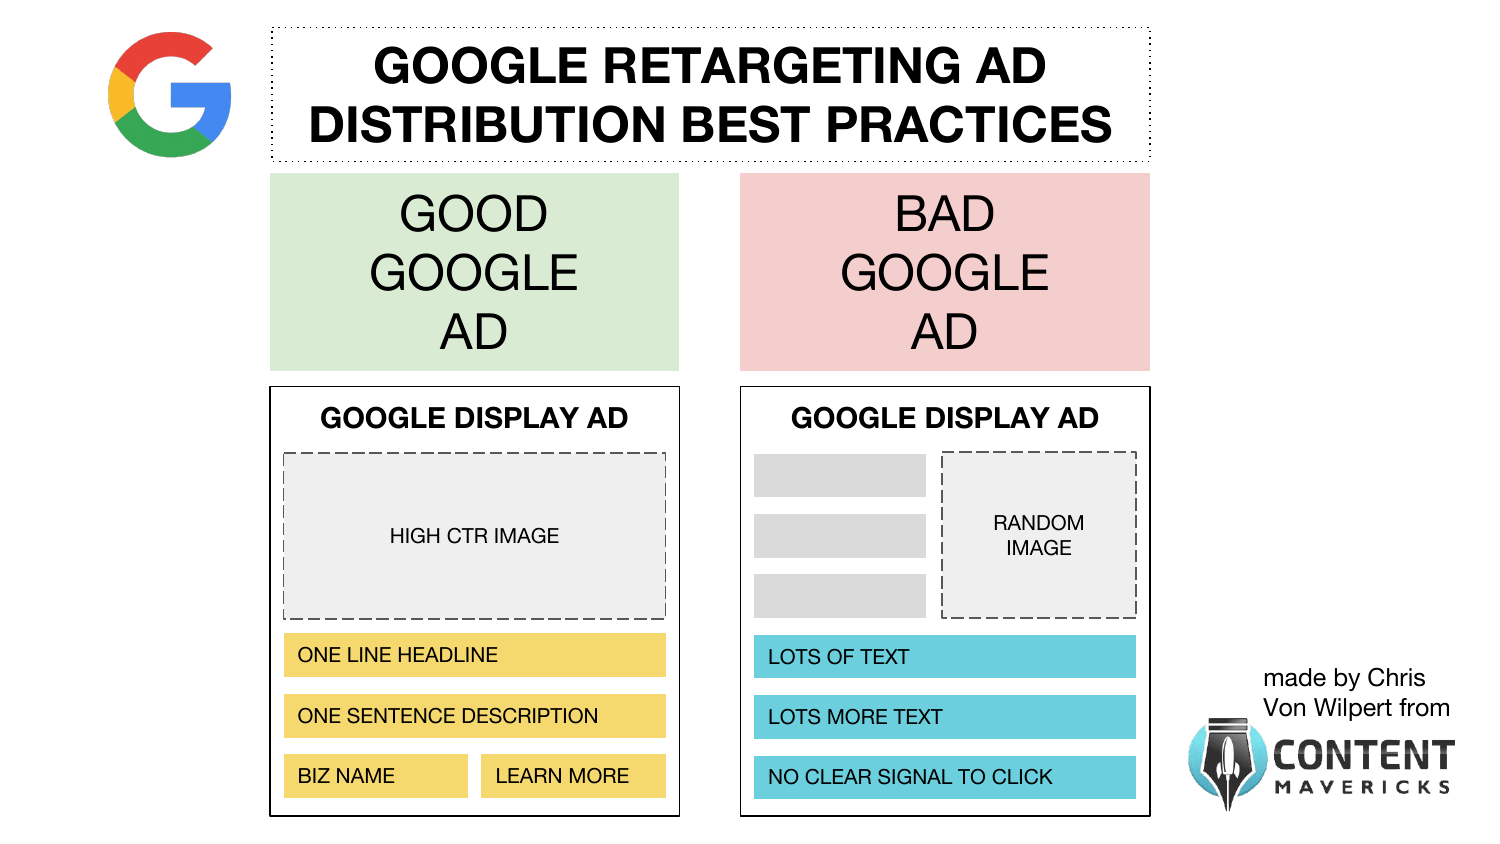 google retargeting ad content distribution best practices image